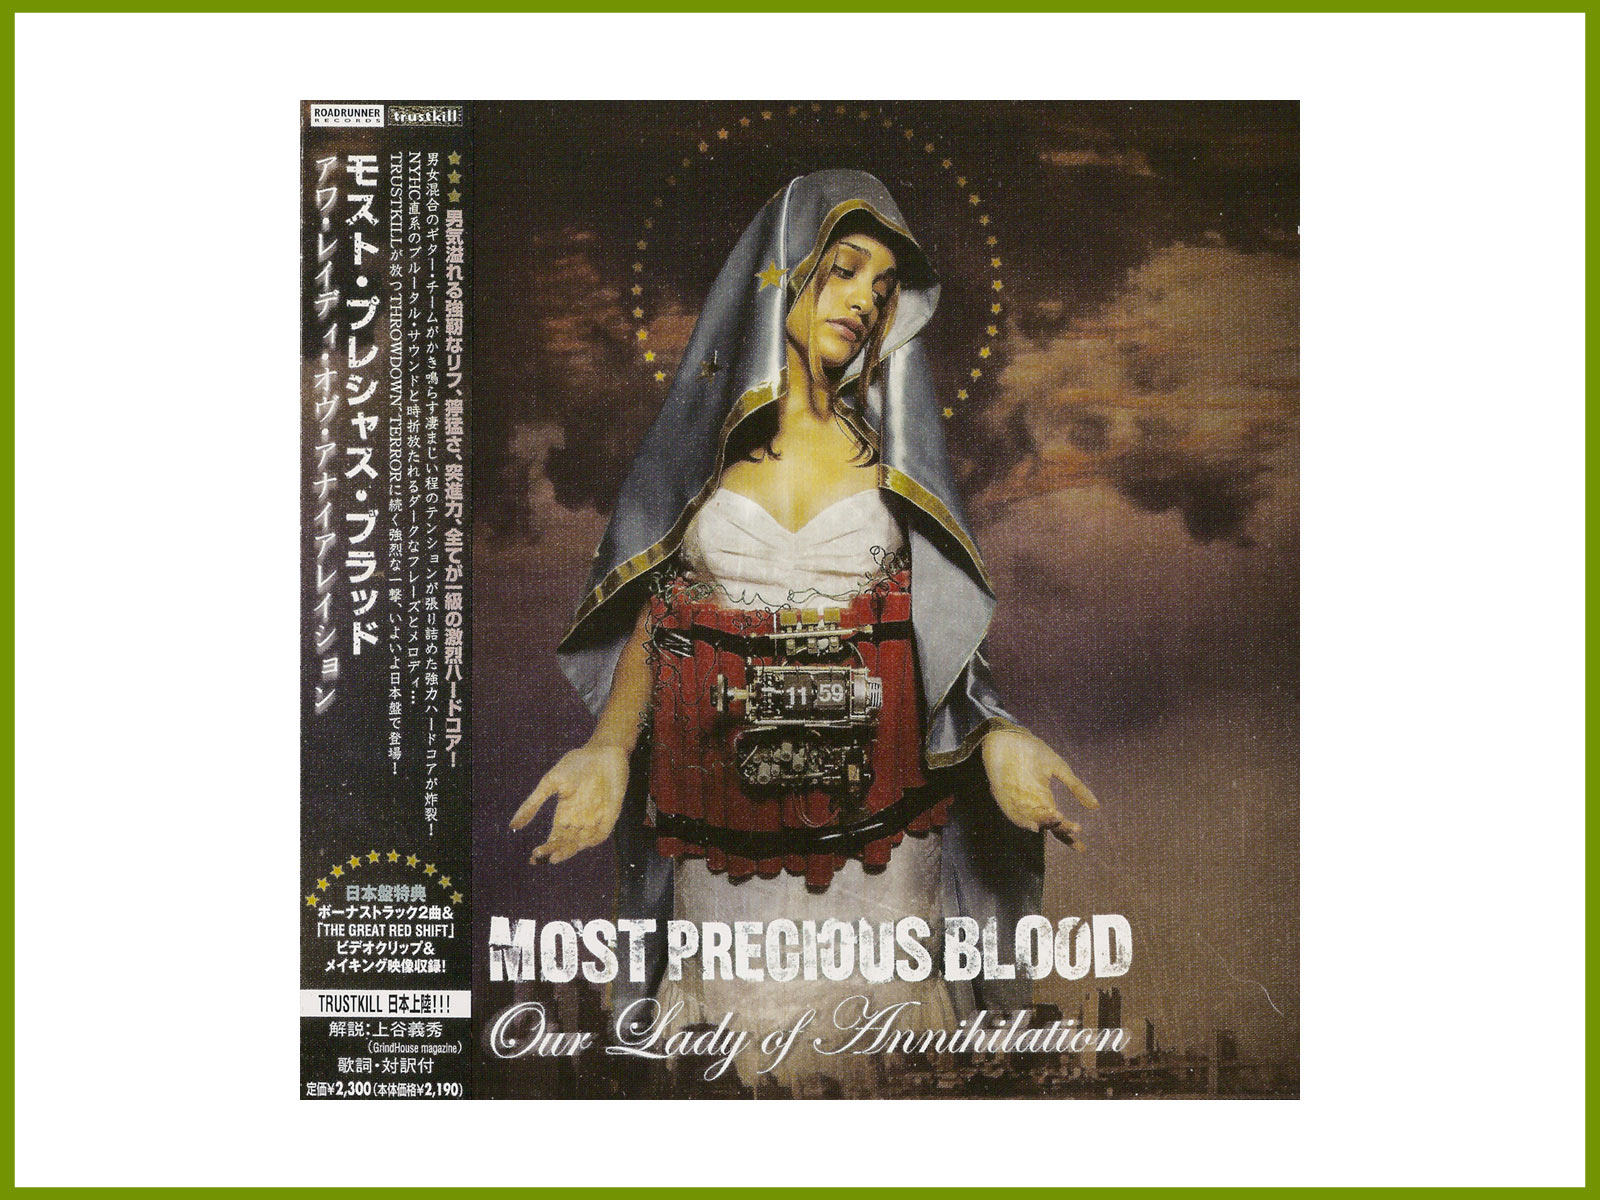 "At Work remix availbale on Most Precious Blood ""Our Lady Of Annihilation"" album, Japan only"